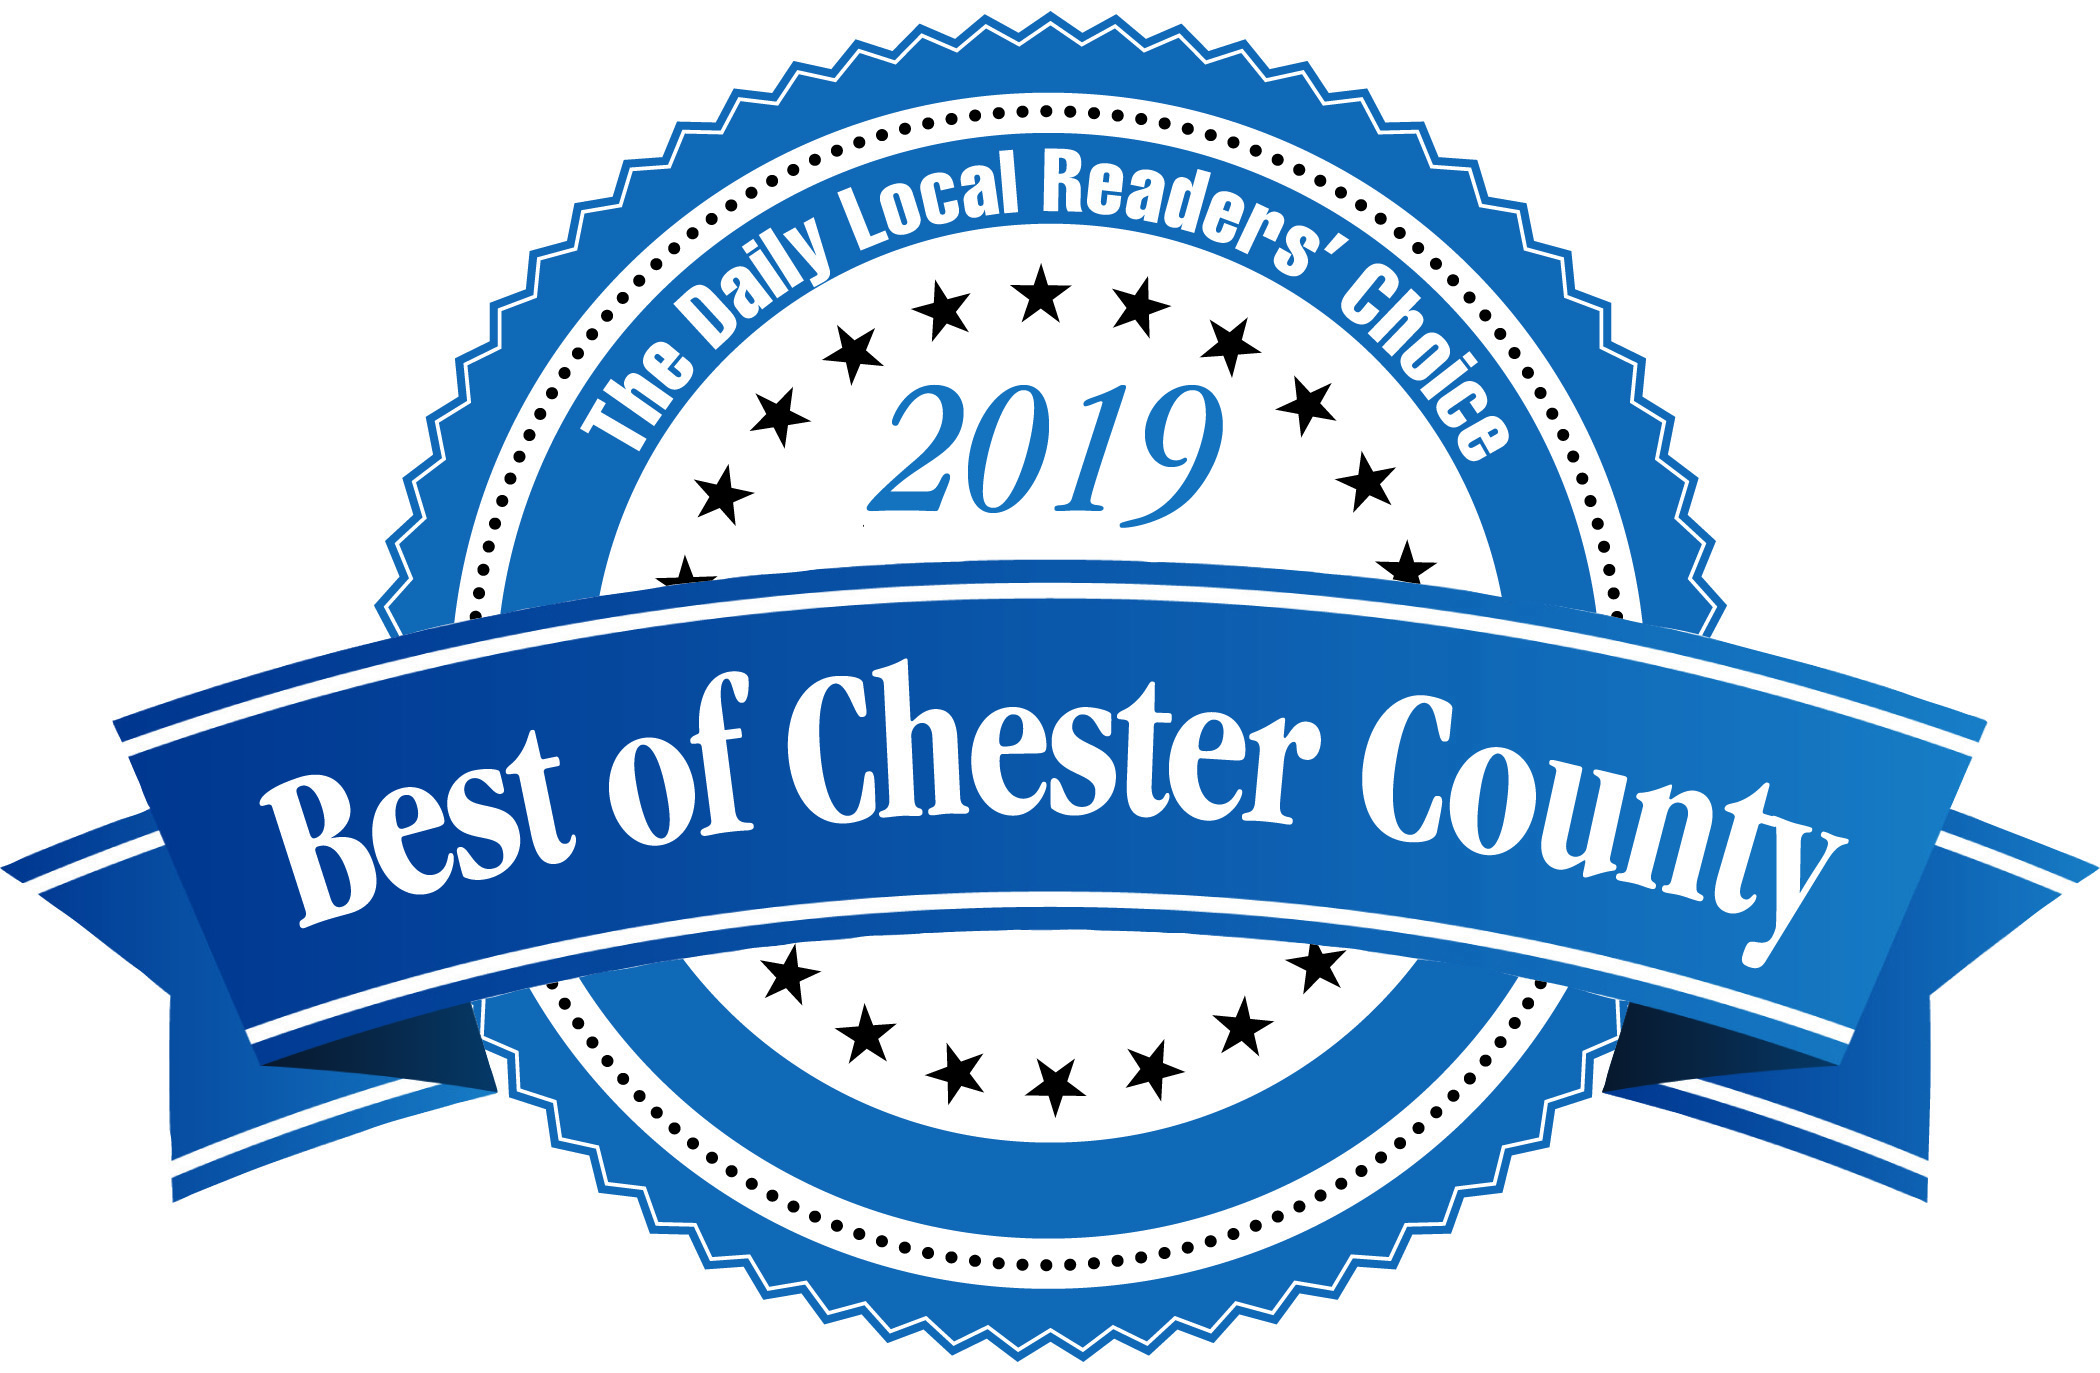 Best of Chester County!